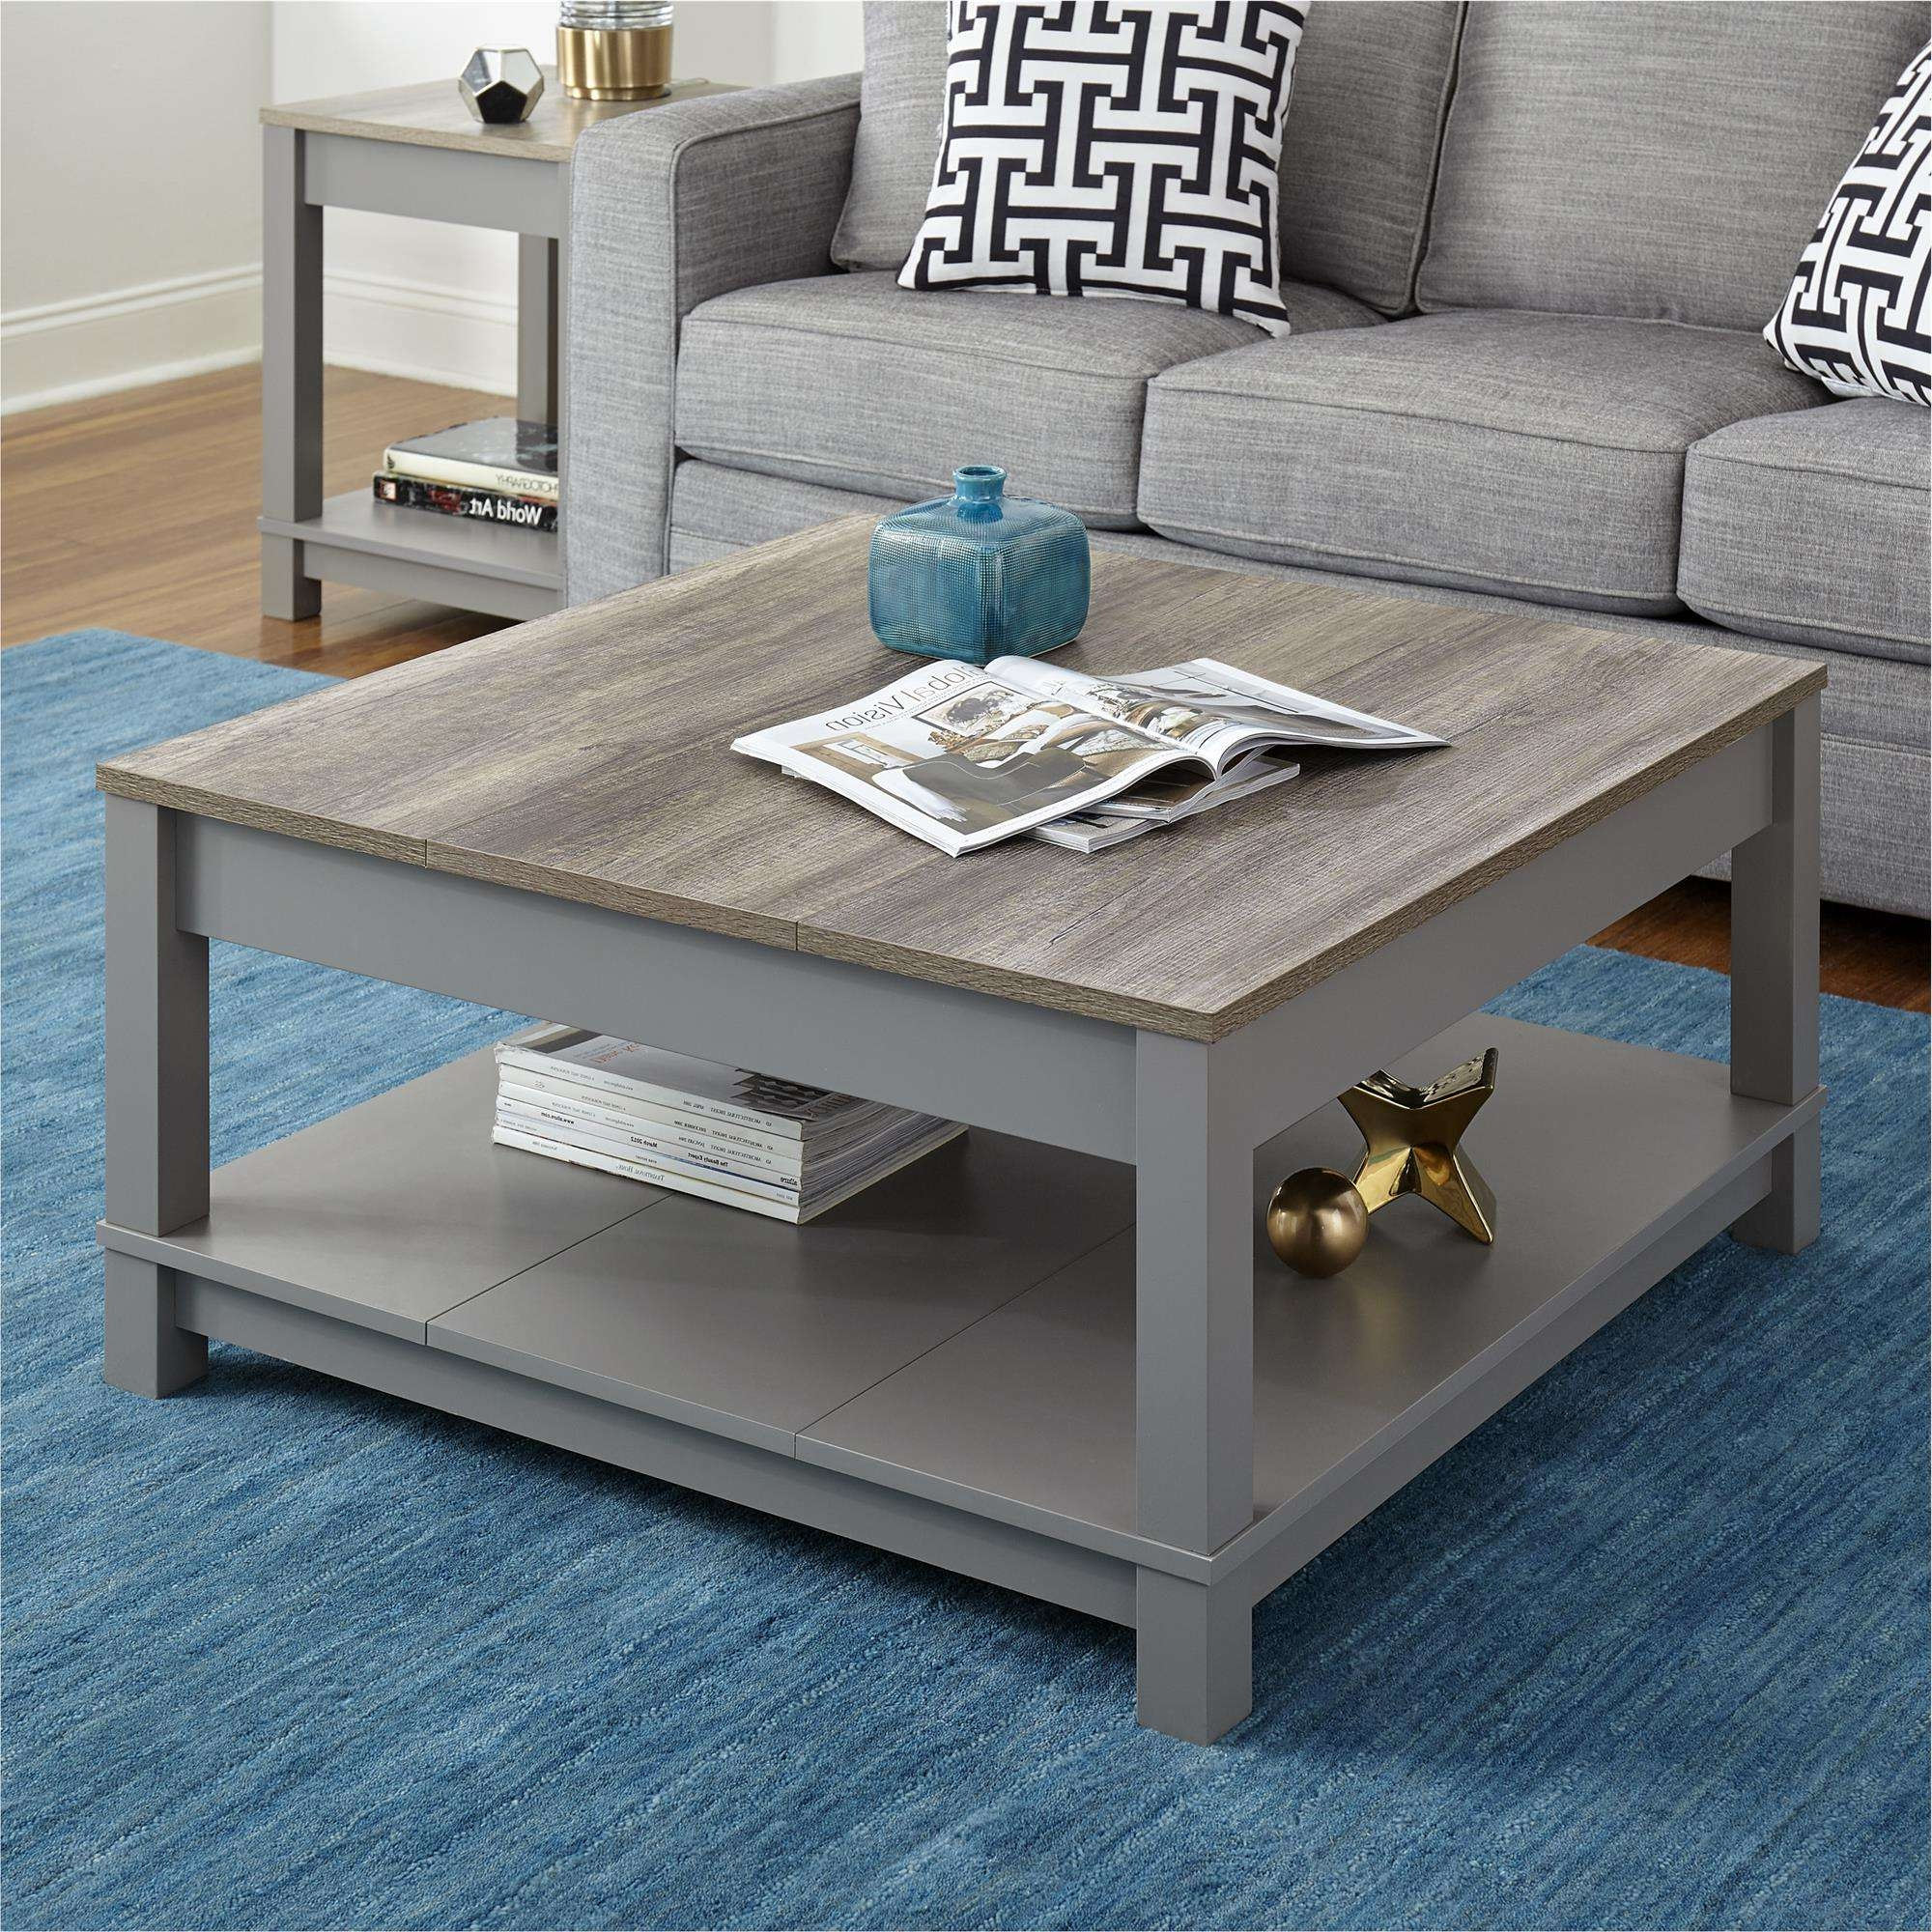 Carver Coffee Table, Gray/weathered Oak (View 3 of 20)